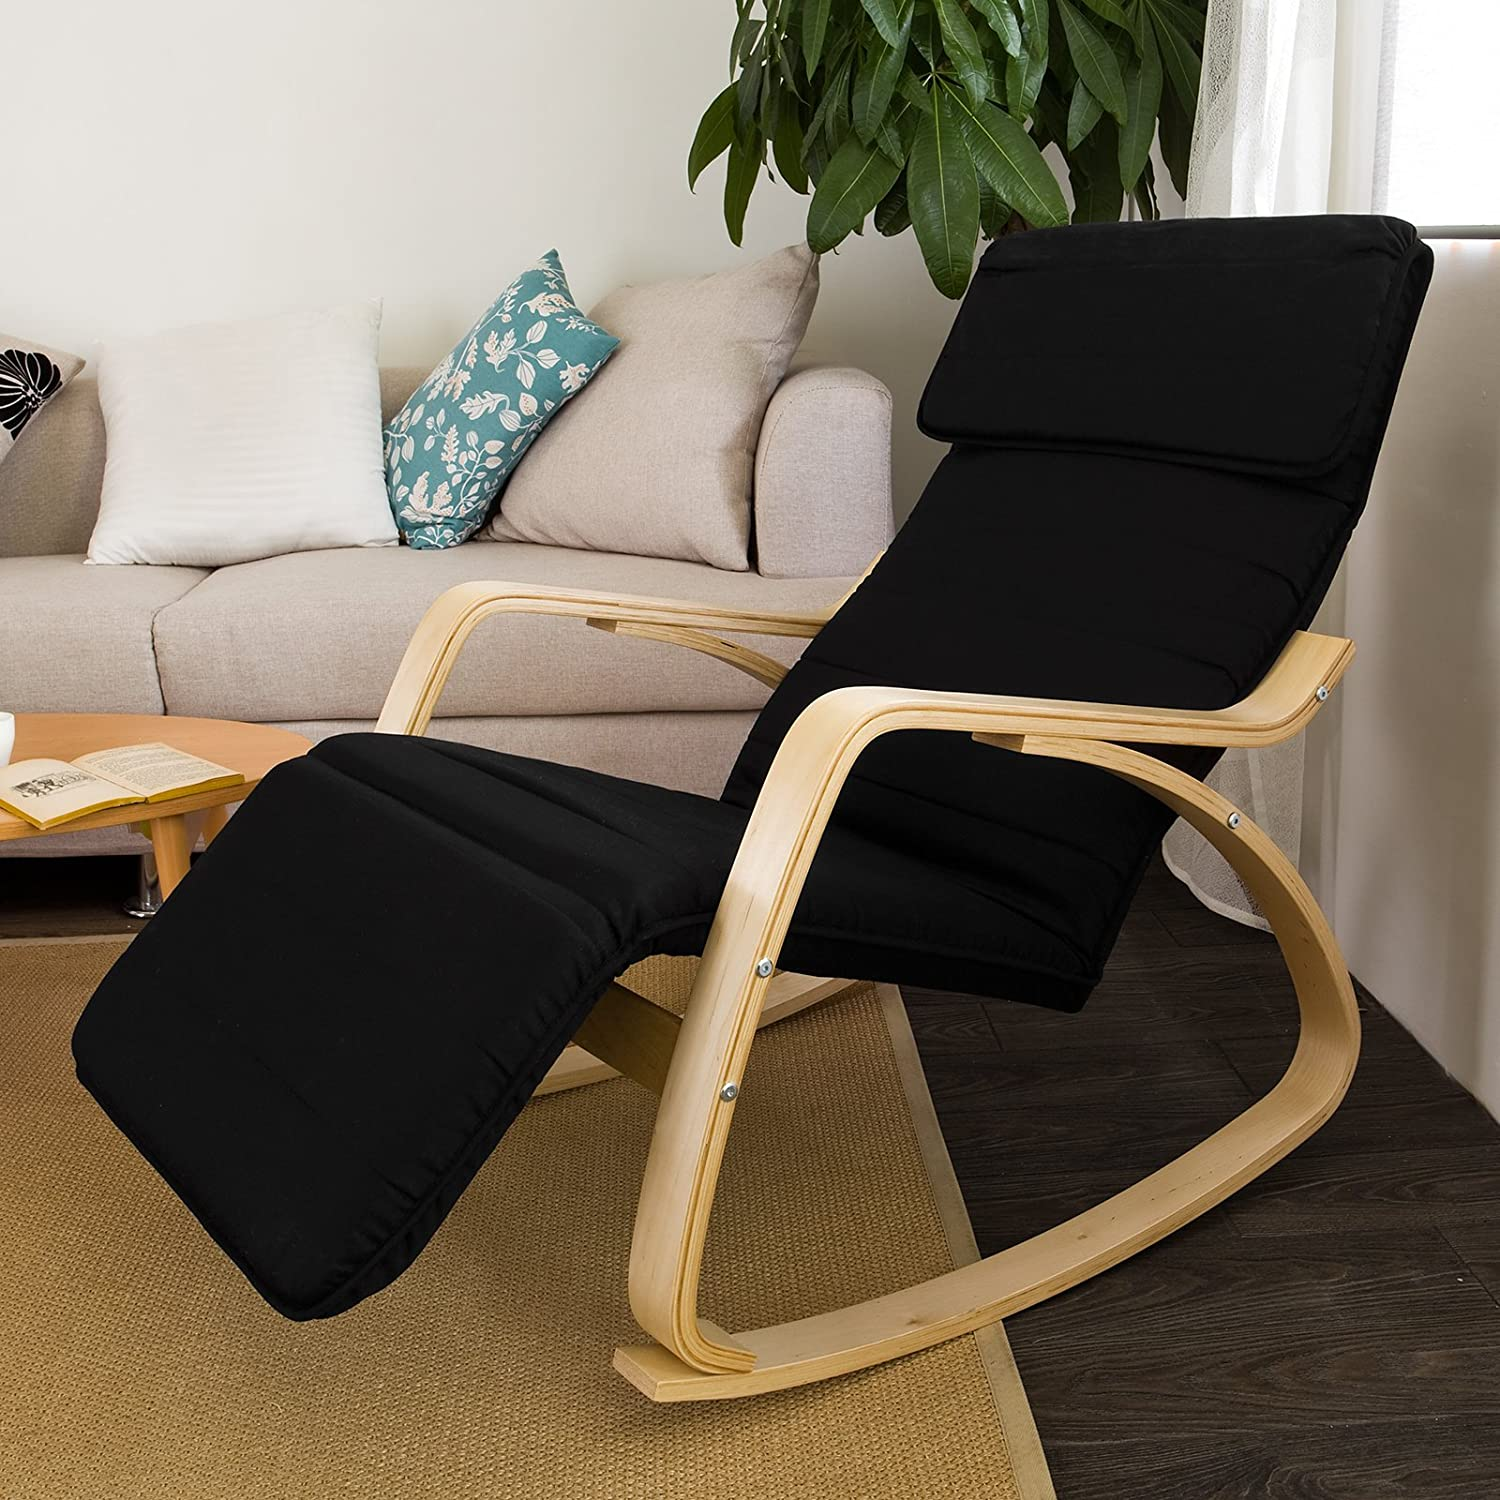 Haotian Relax Rocking Chair with Foot Rest Design, Lounge Chair, Recliners Poly-cotton Fabric Cushion,FST16-SCH,Black Color